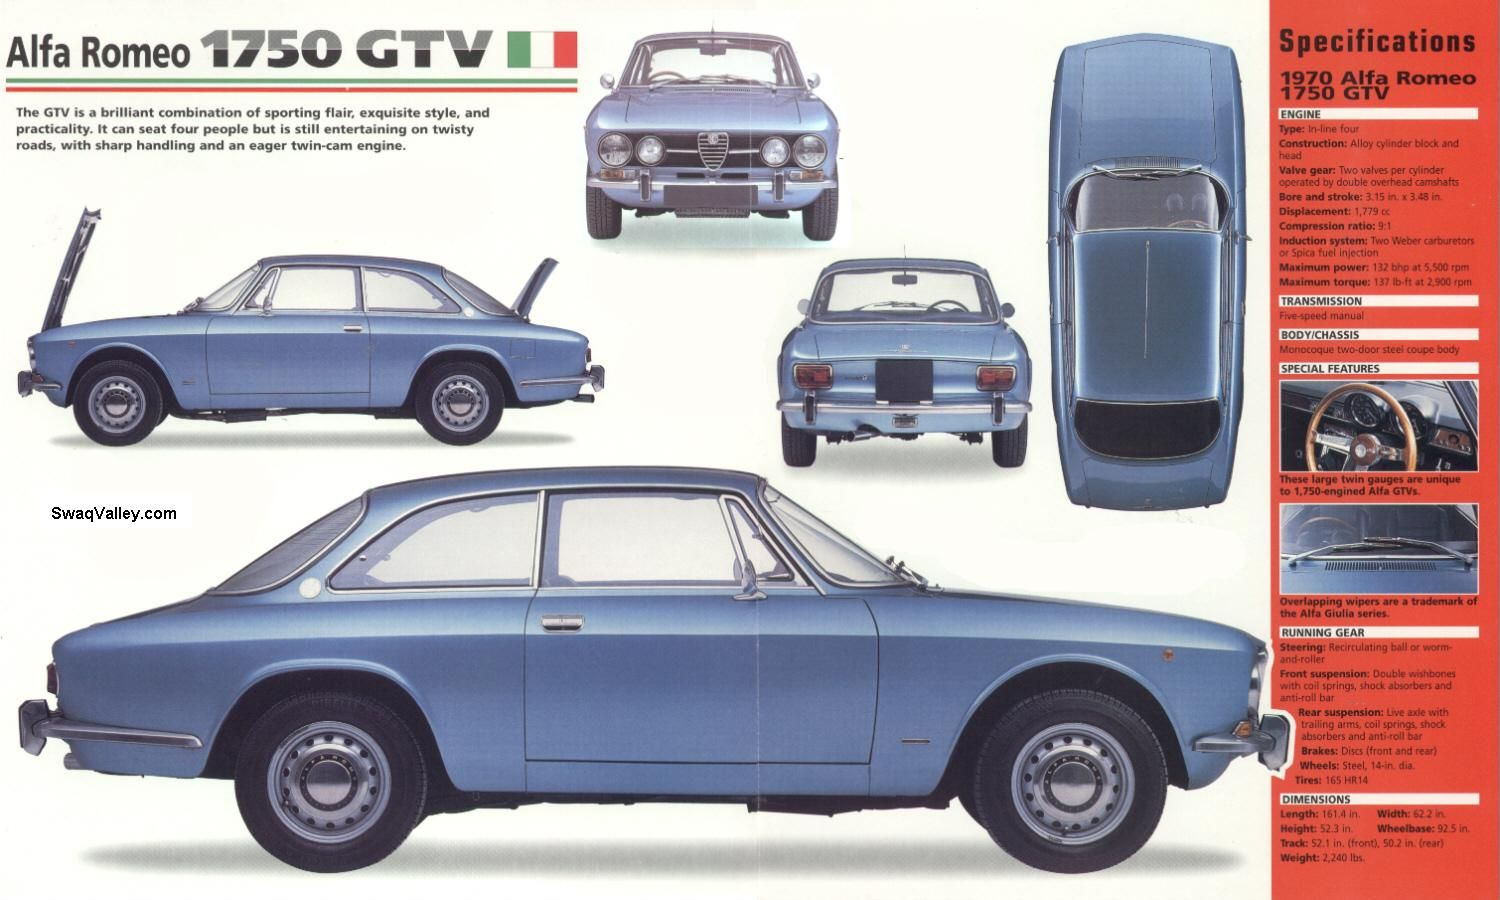 Alfa romeo 1750 gtv car classics - Find This Pin And More On Alfa By Grant3497